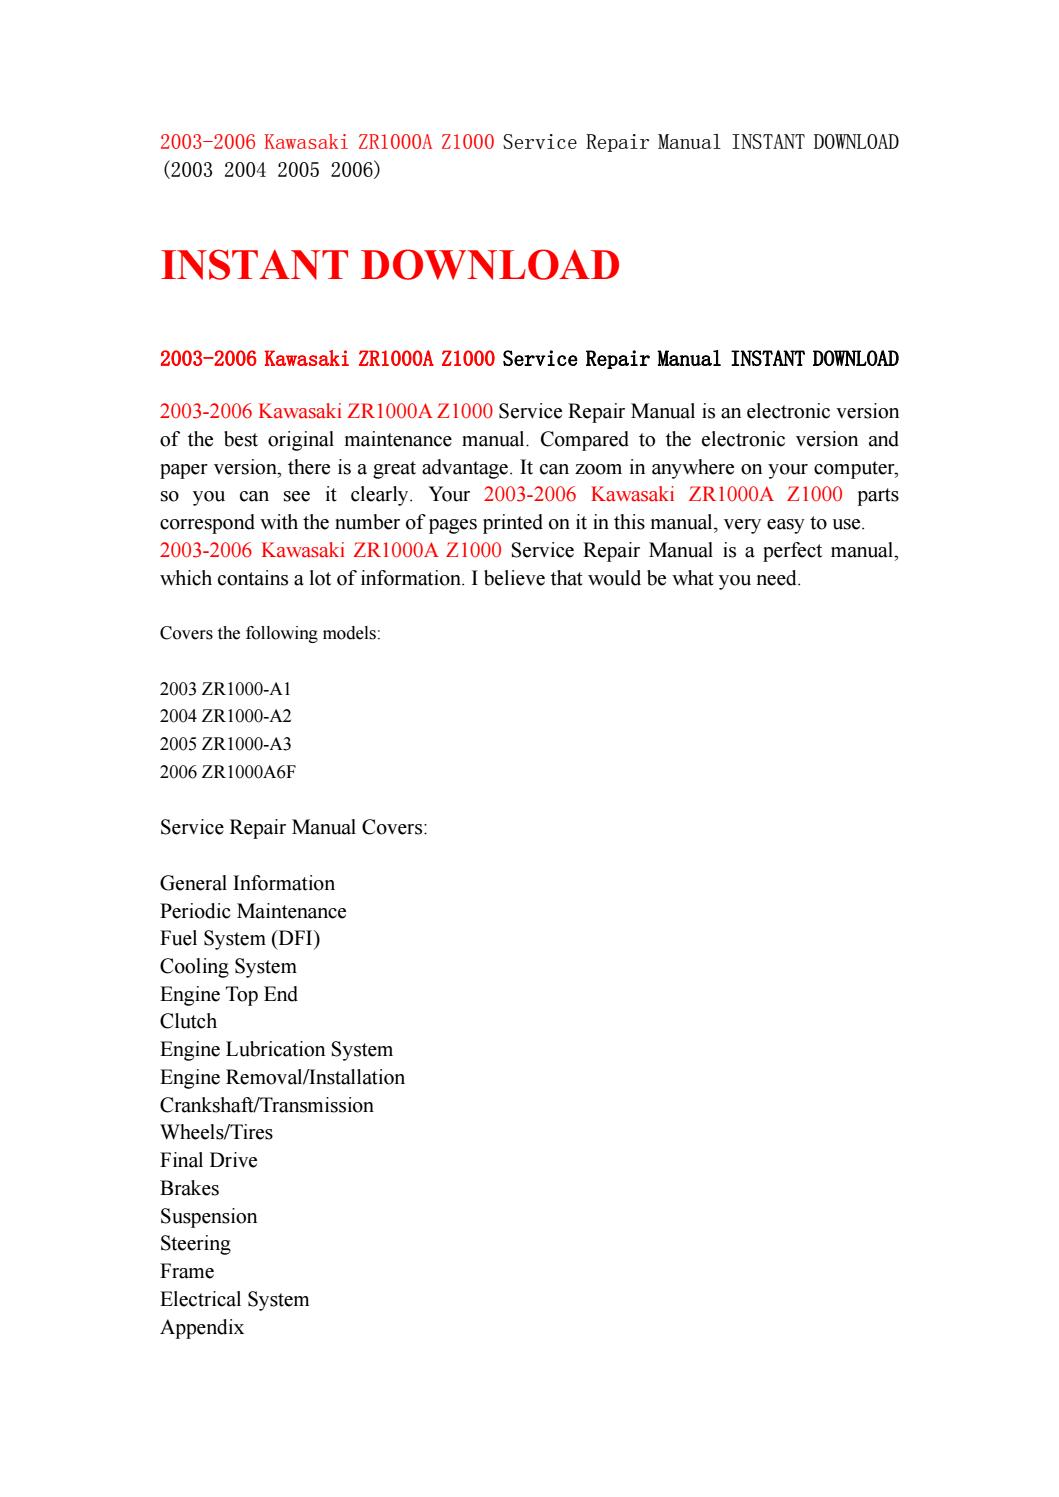 2003 2006 kawasaki zr1000a z1000 service repair manual instant download ( 2003 2004 2005 2006) by kmsjnfhse - issuu